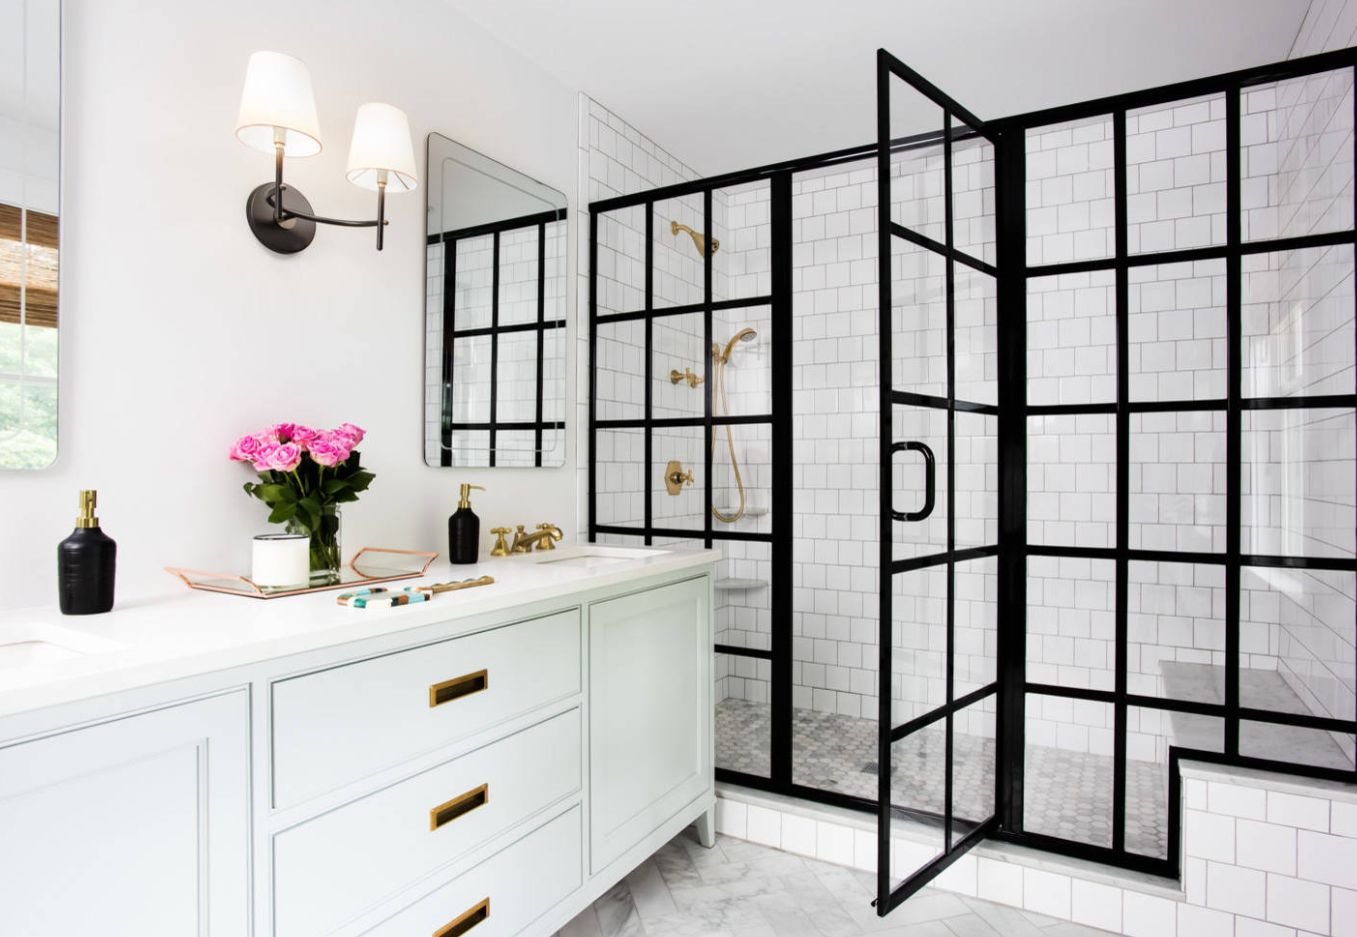 1558953966 311 black and white bathroom designs that show simple can also be interesting - Black and White Bathroom Designs That Show Simple Can Also Be Interesting